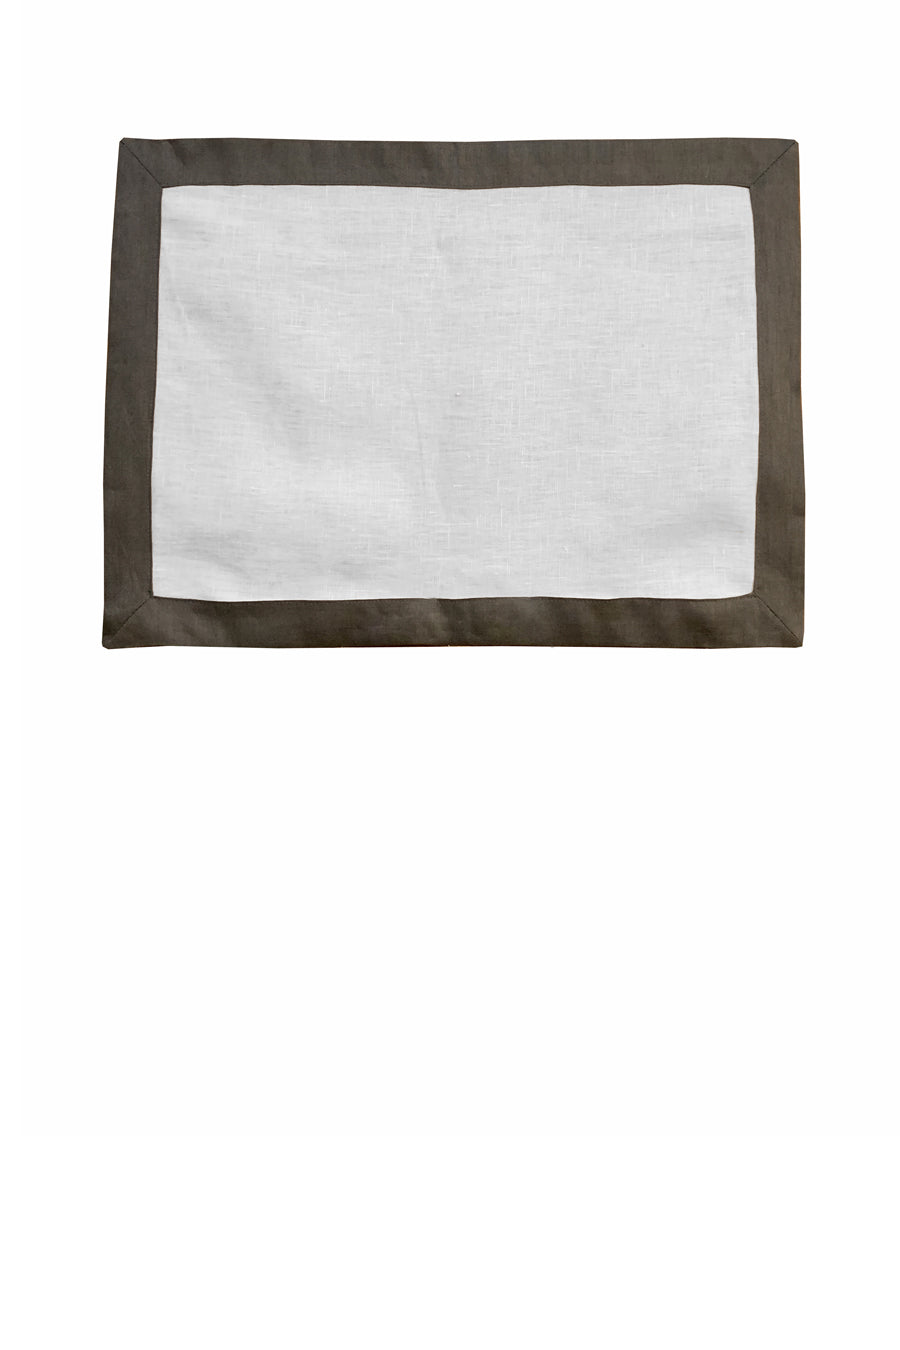 Contrast Border Placemat Grey/White